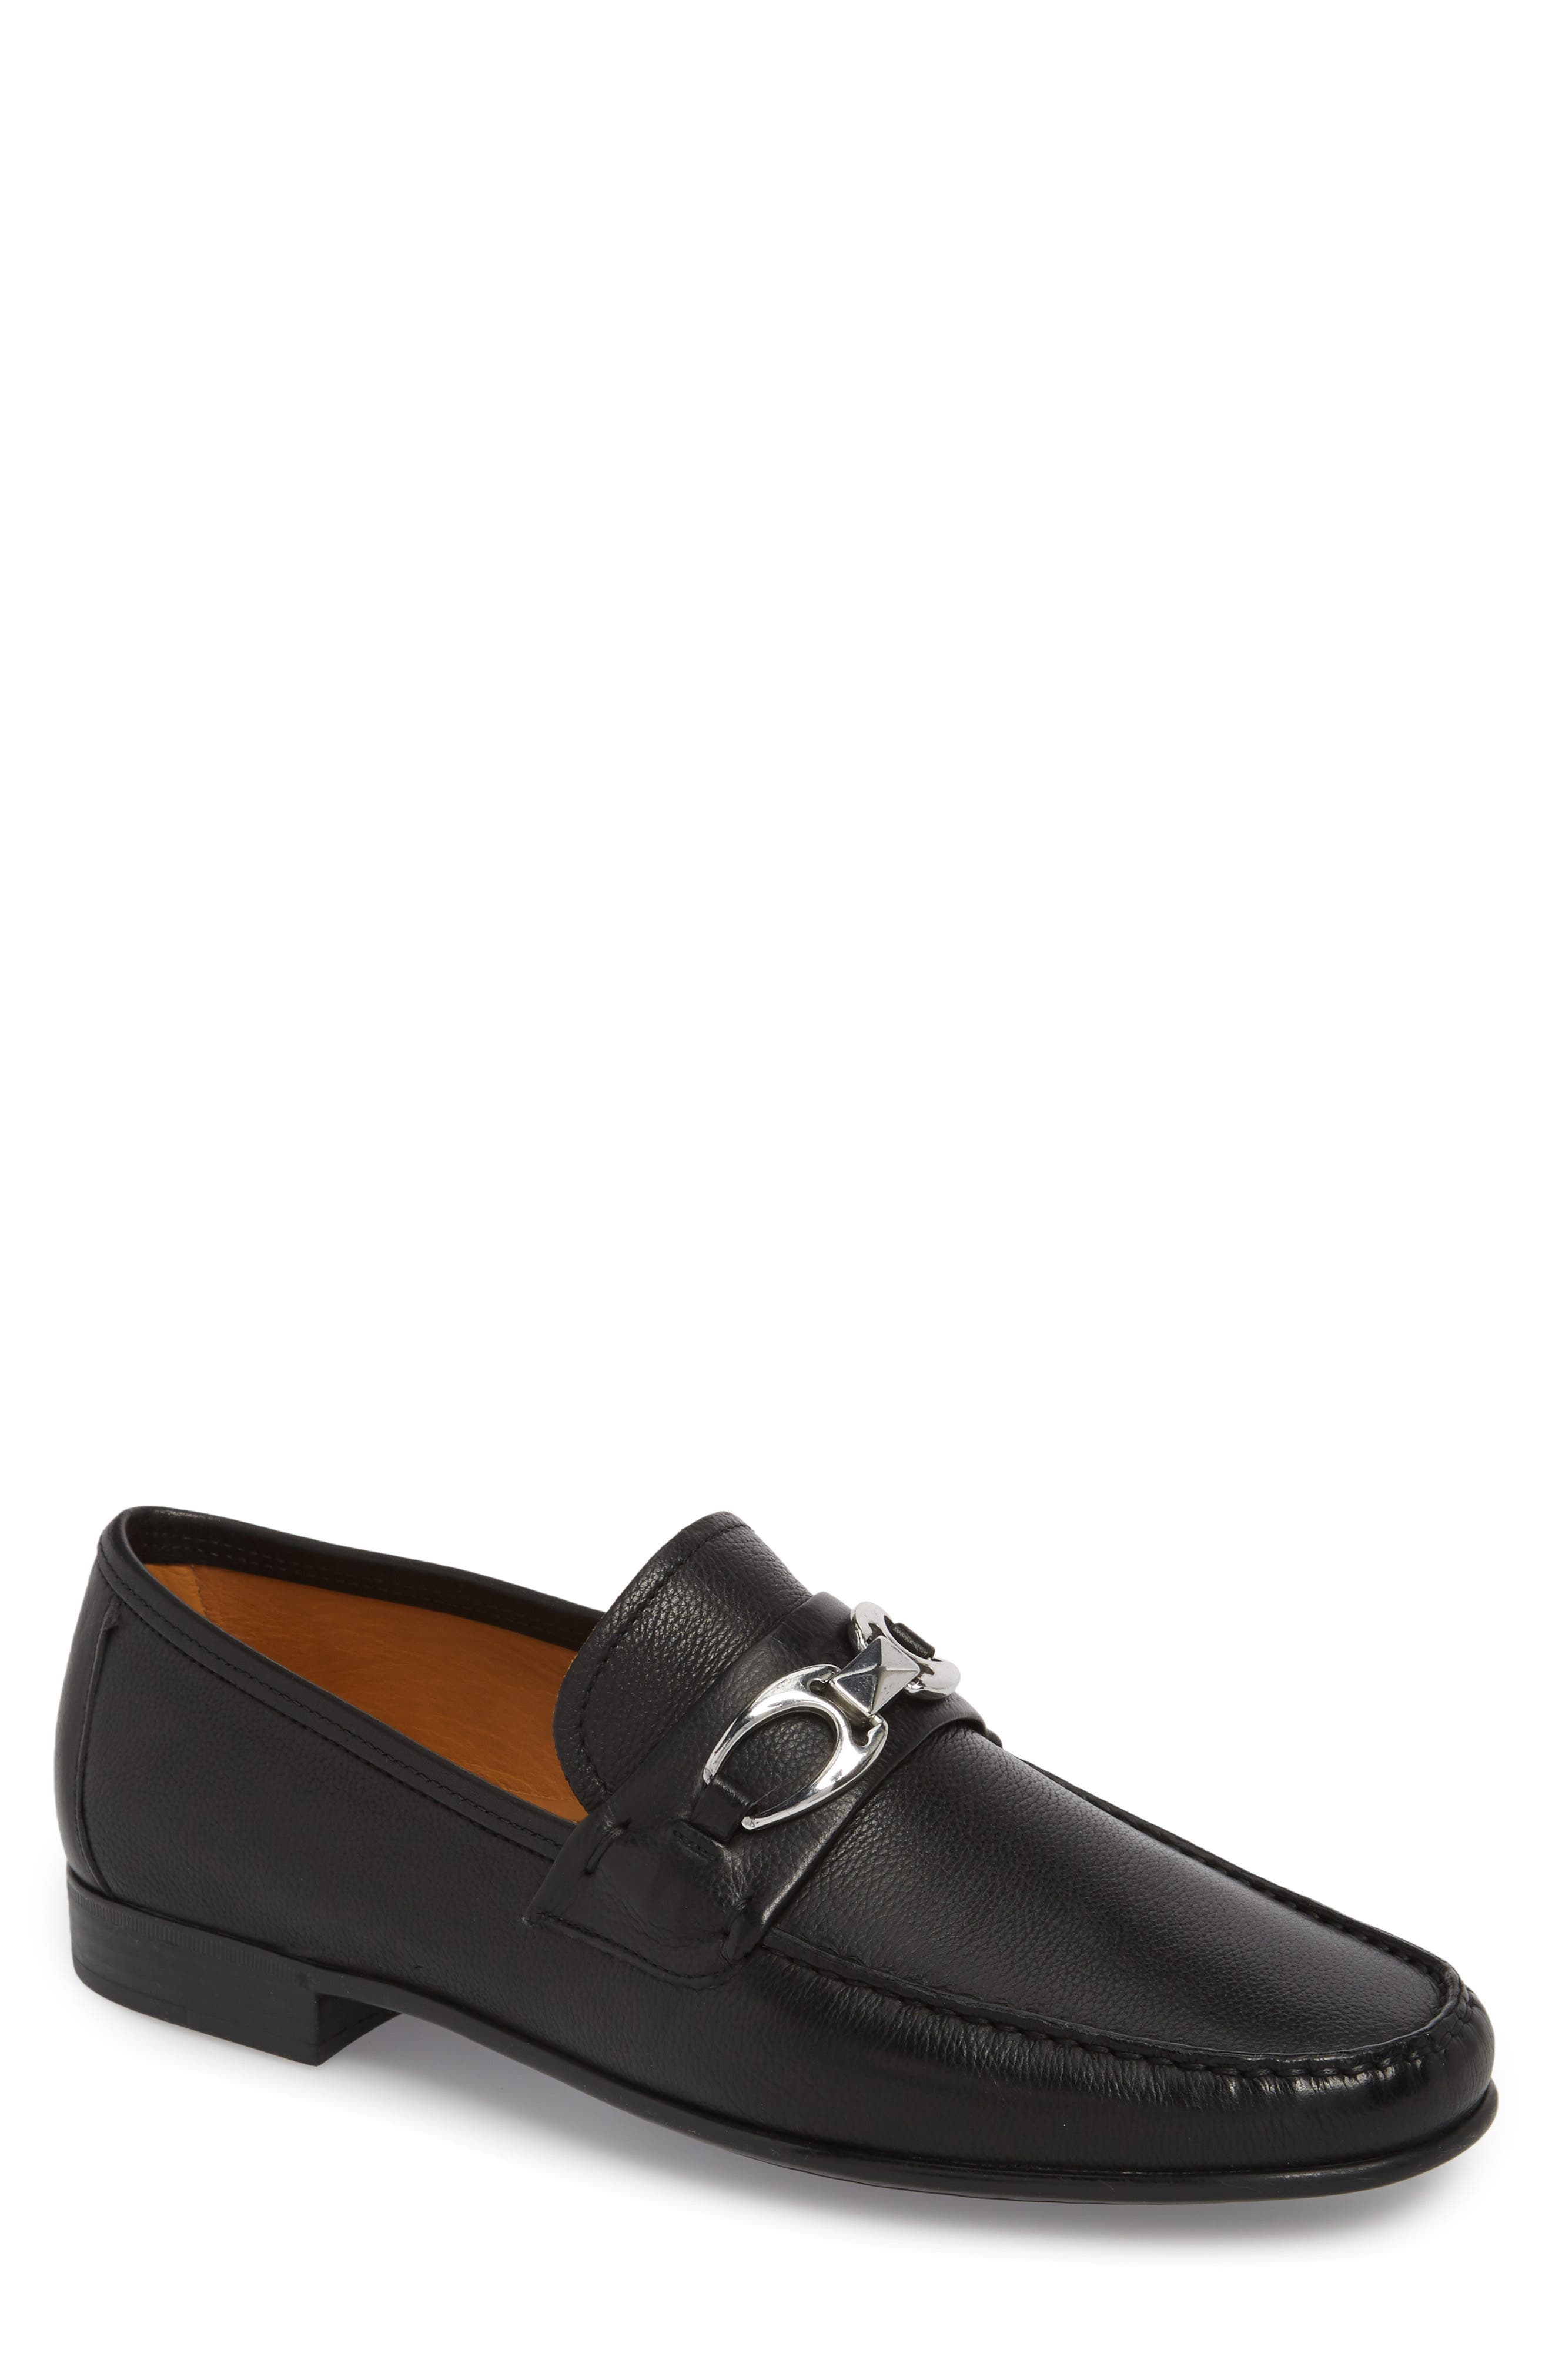 Charles Bit Loafer,                             Main thumbnail 1, color,                             012